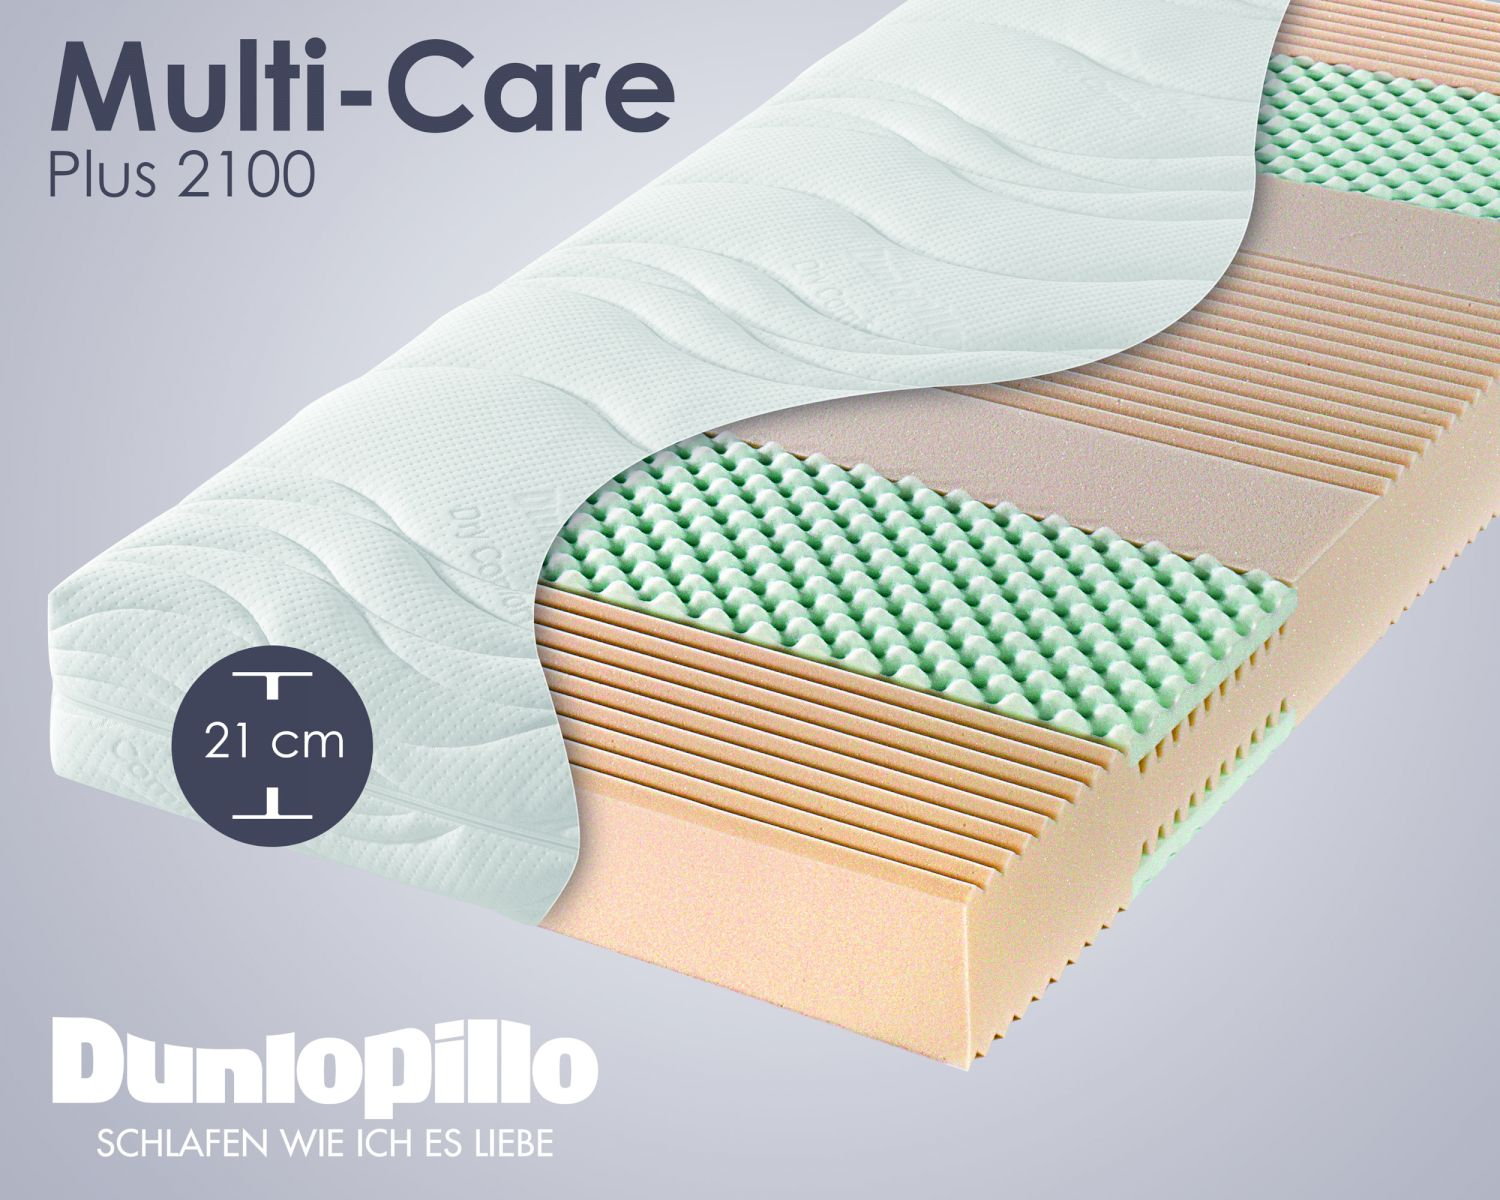 Matratzenschoner Sinnvoll Dunlopillo Multi Care Plus 2100 Kaltschaum Matratzen